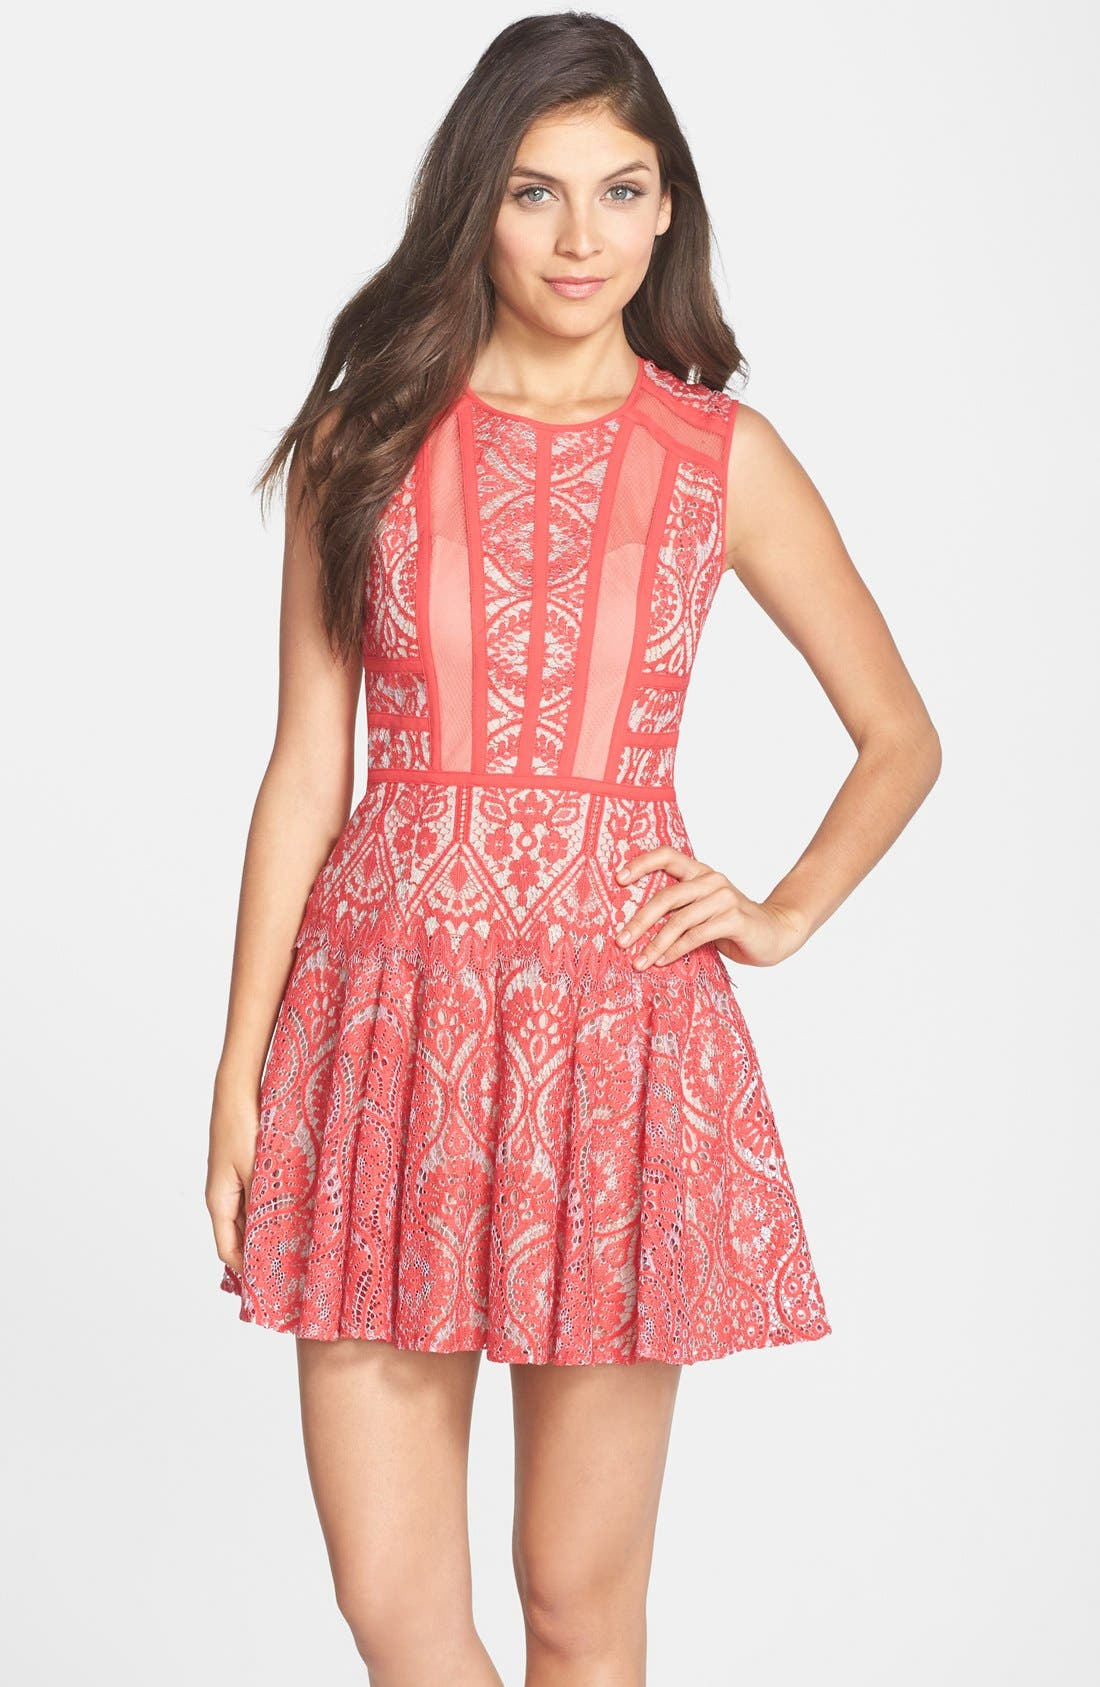 Alternate Image 1 Selected - BCBGMAXAZRIA 'Shira' Knit Lace Fit & Flare Dress